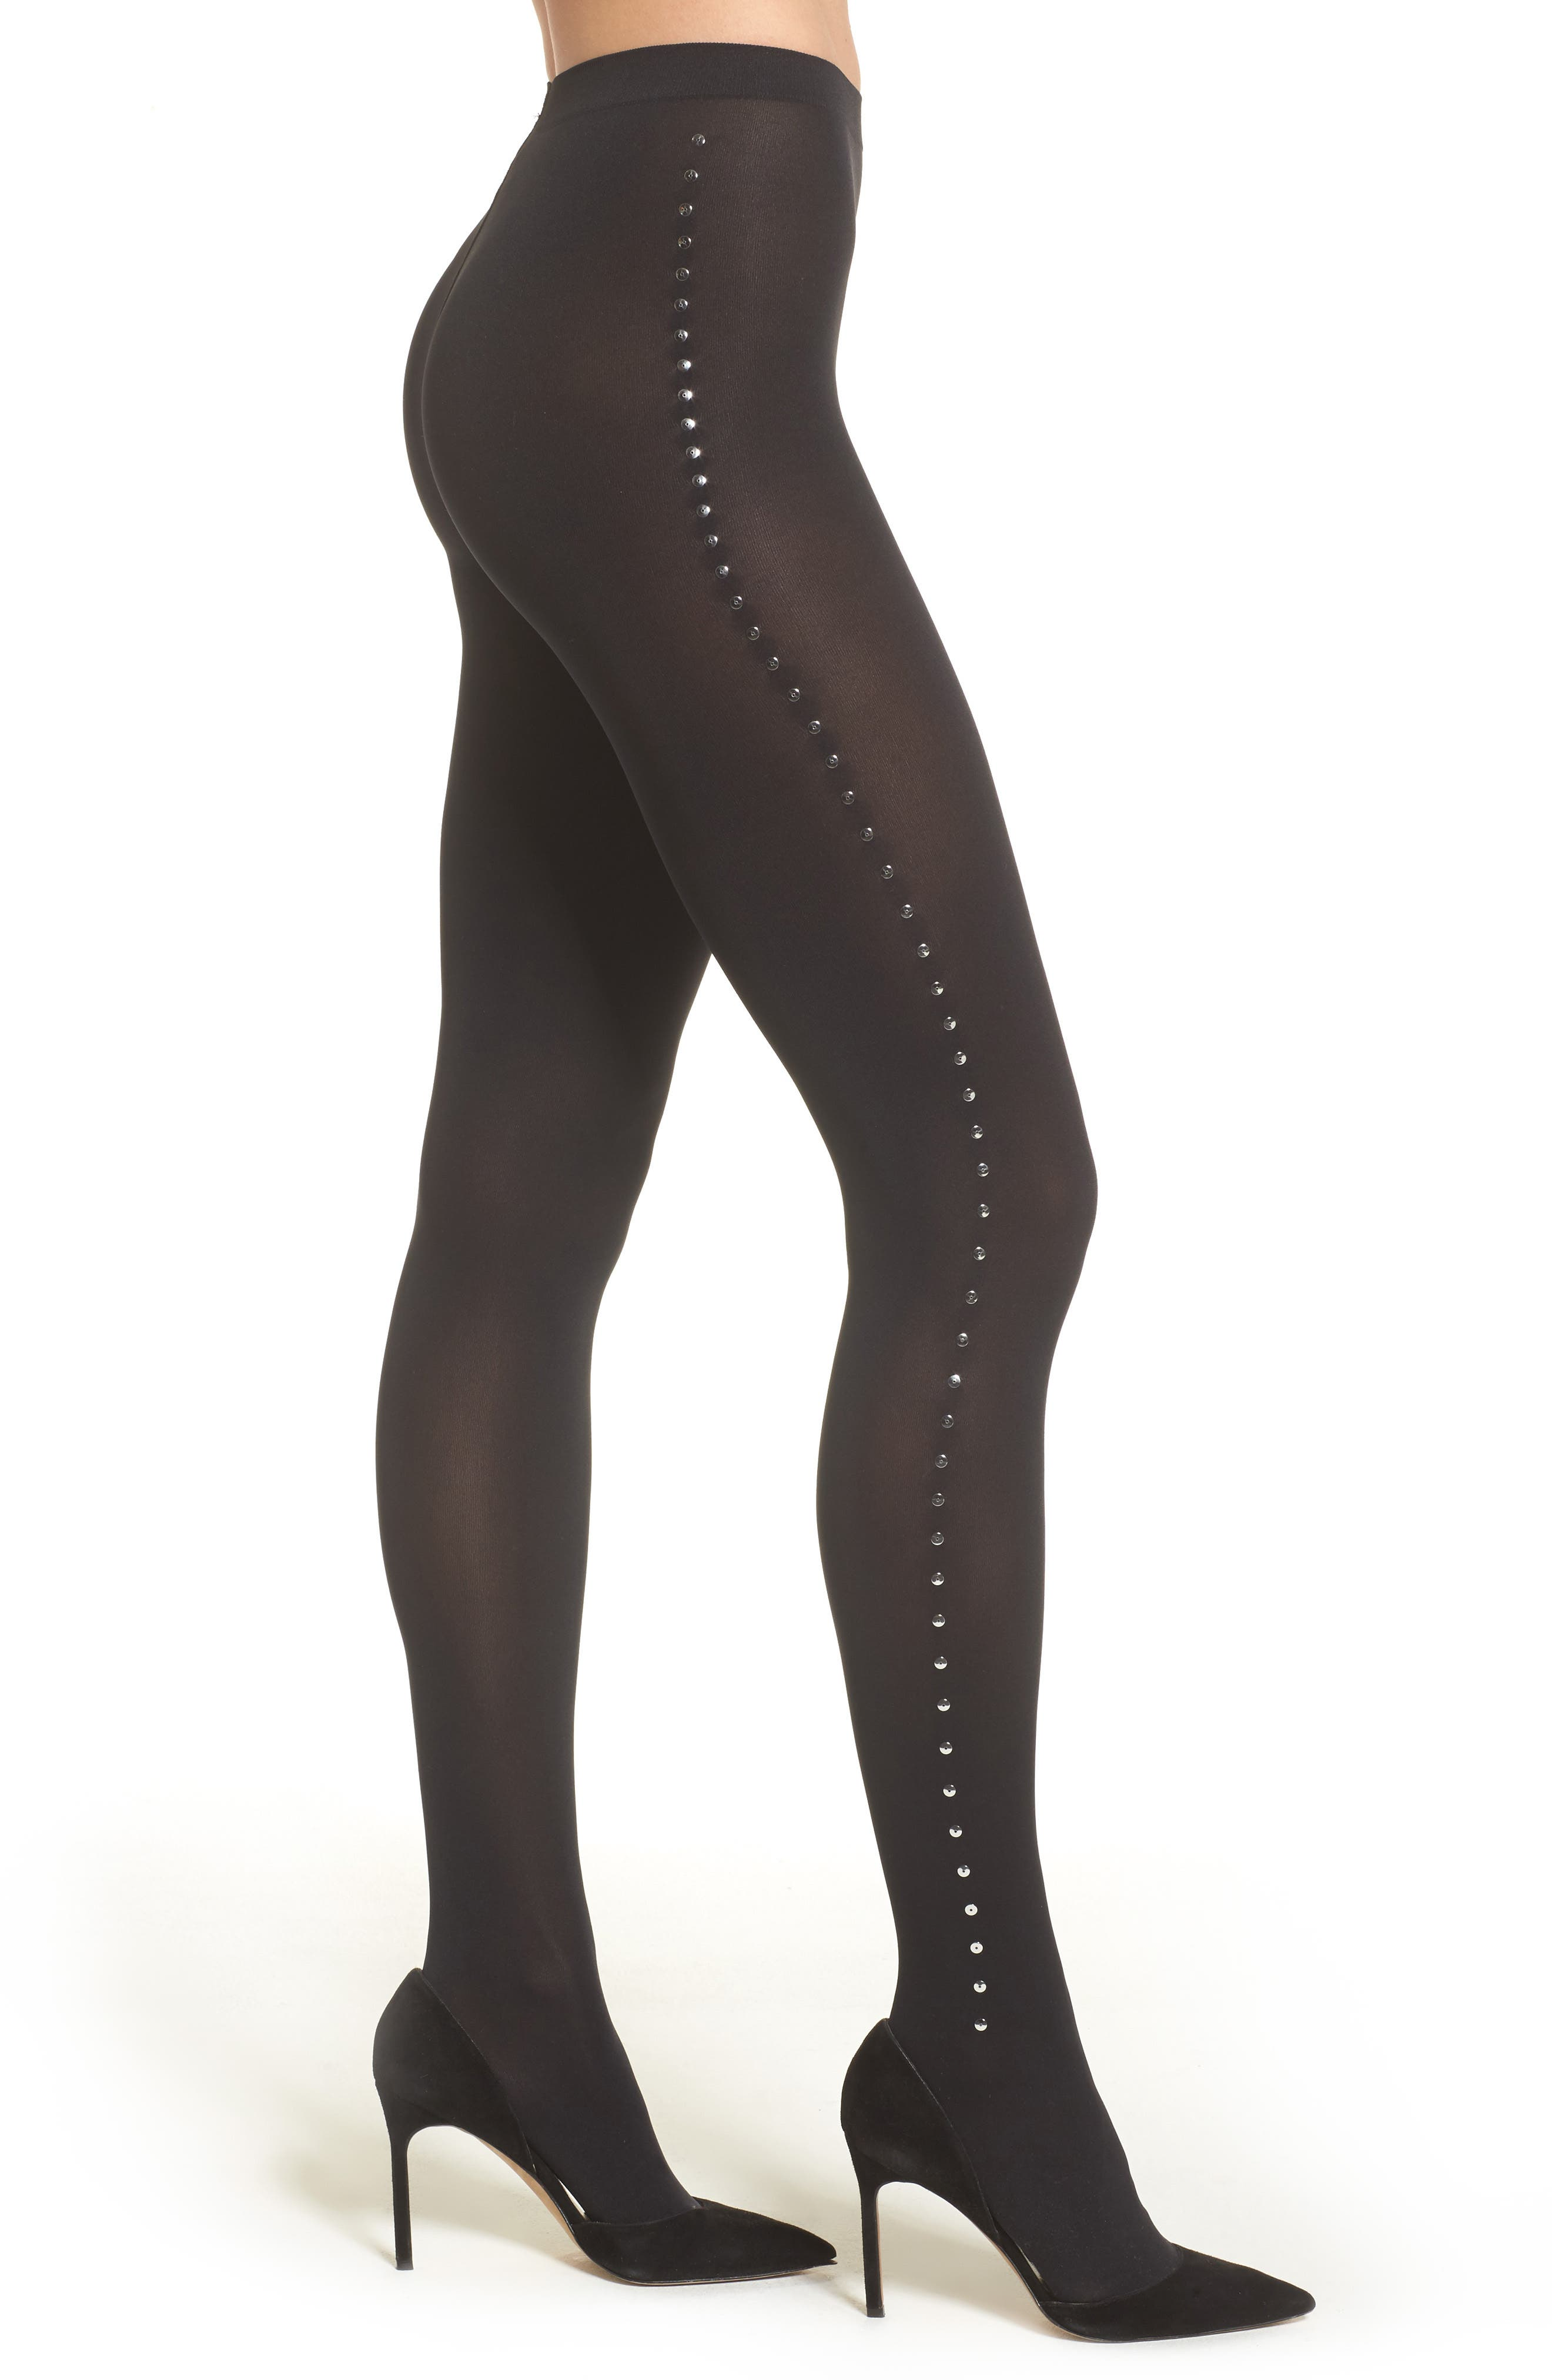 Embellished Tights,                             Main thumbnail 1, color,                             Black/ Silver